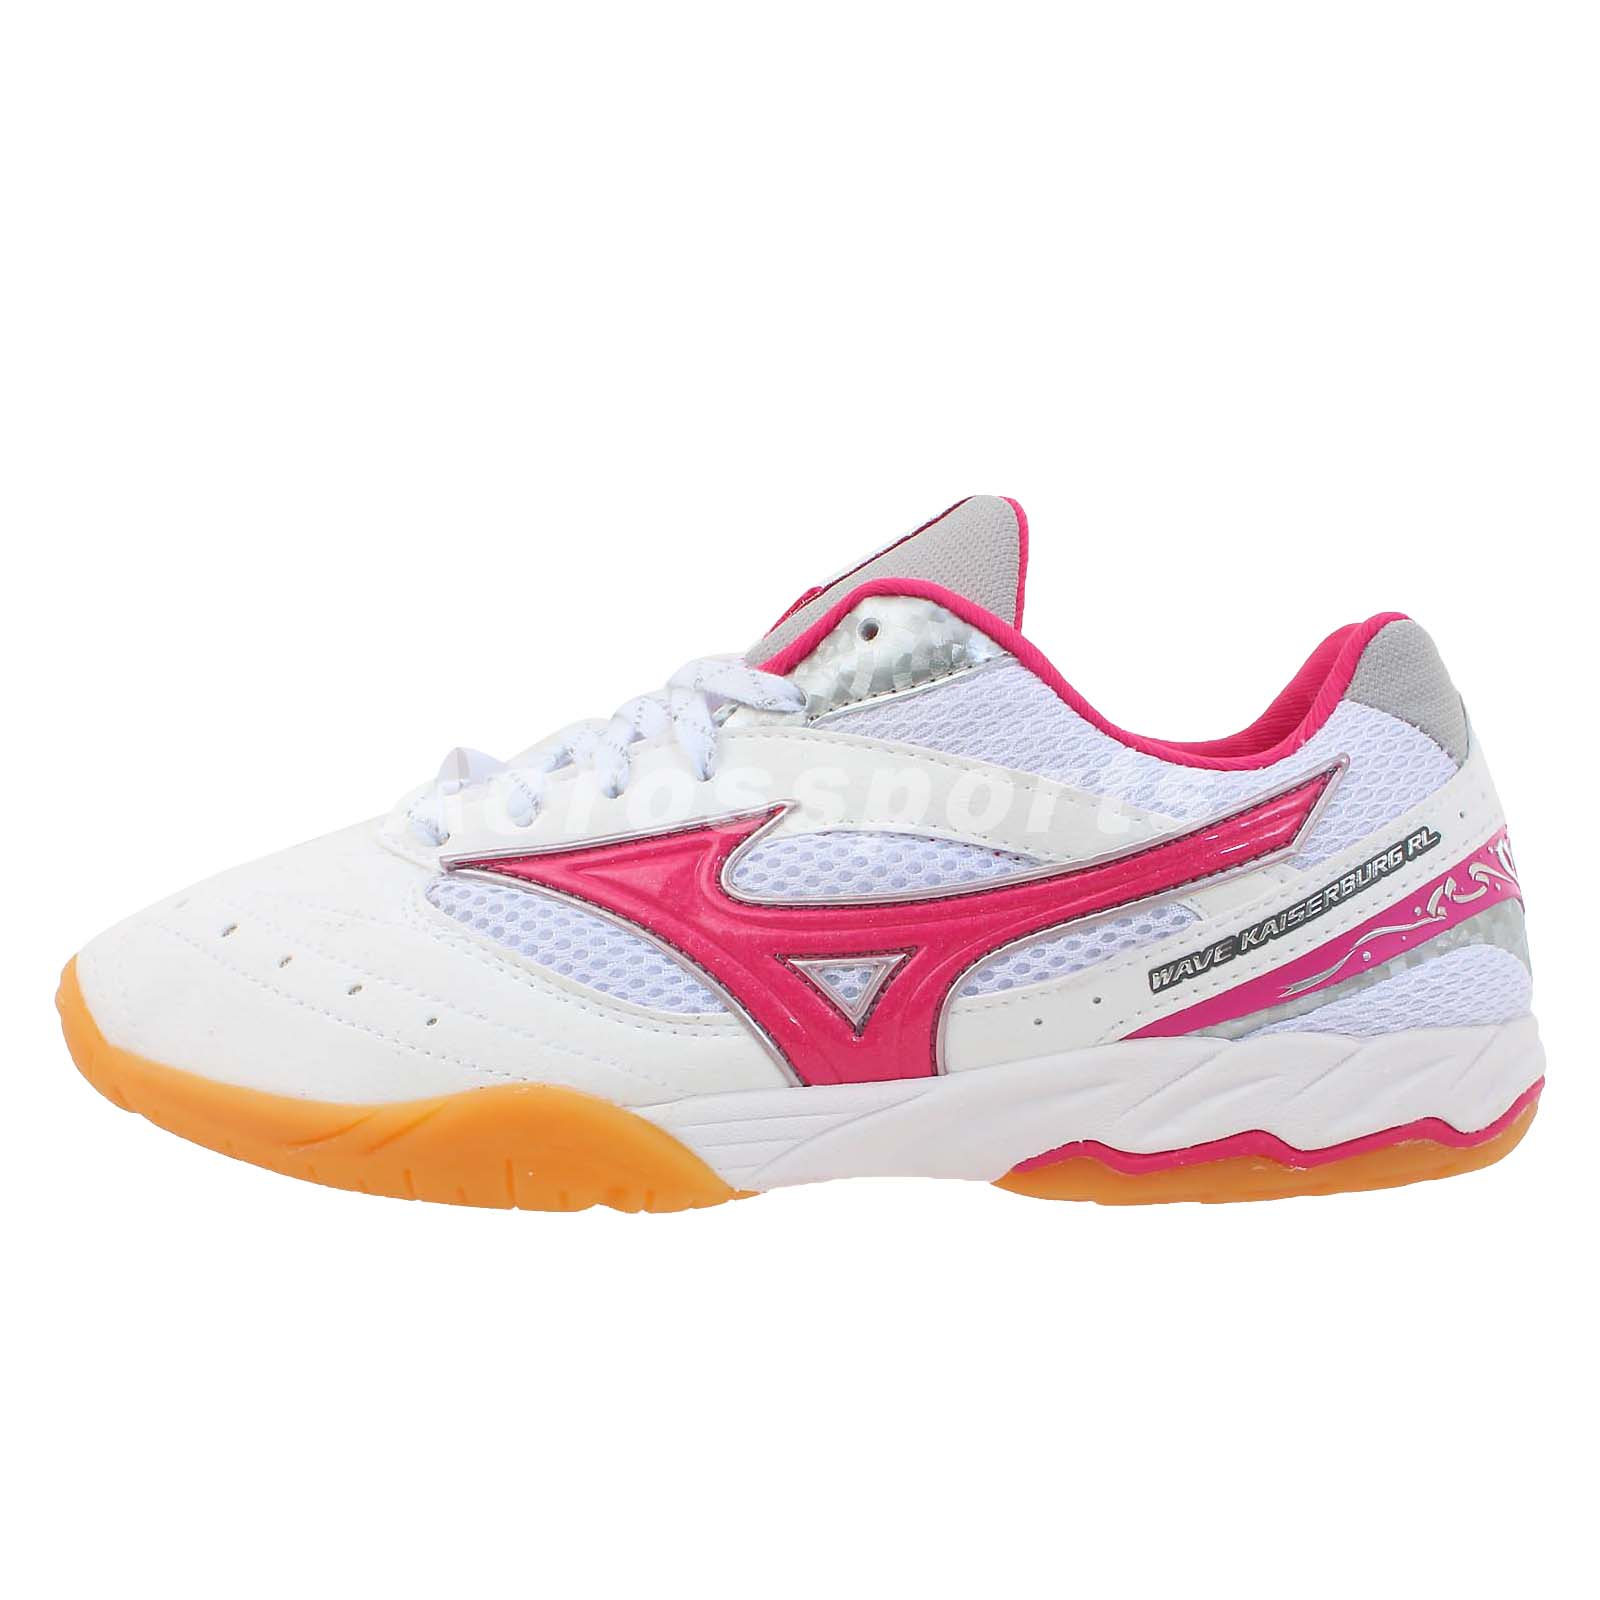 mizuno wave kaiserburg rl2 gum 2013 womens table tennis